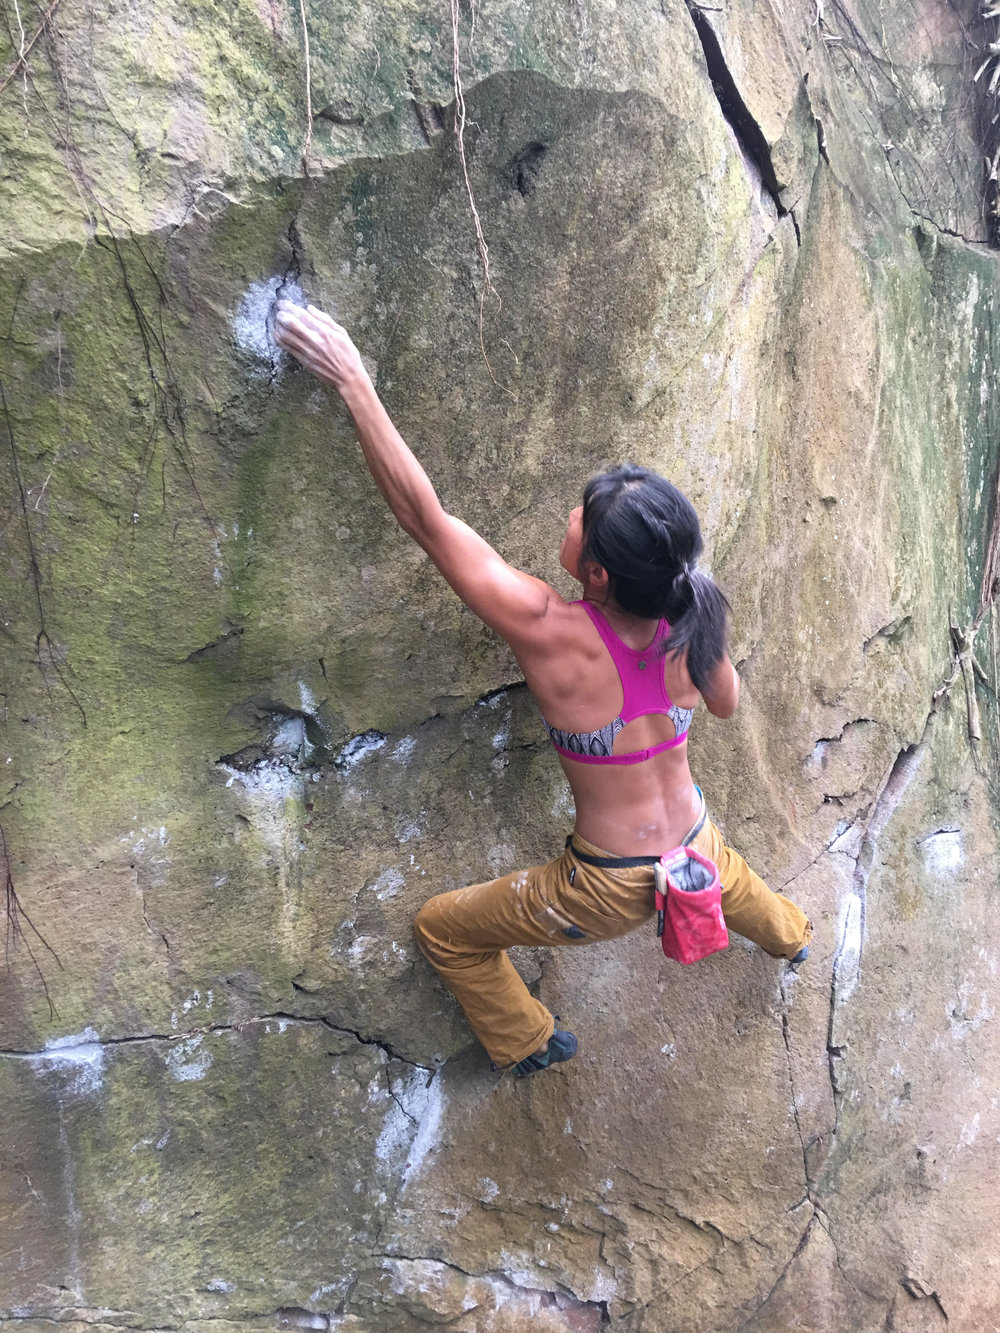 Wai Yi projecting Tropical Parasite V8/9 (Photo credit: Smalls)